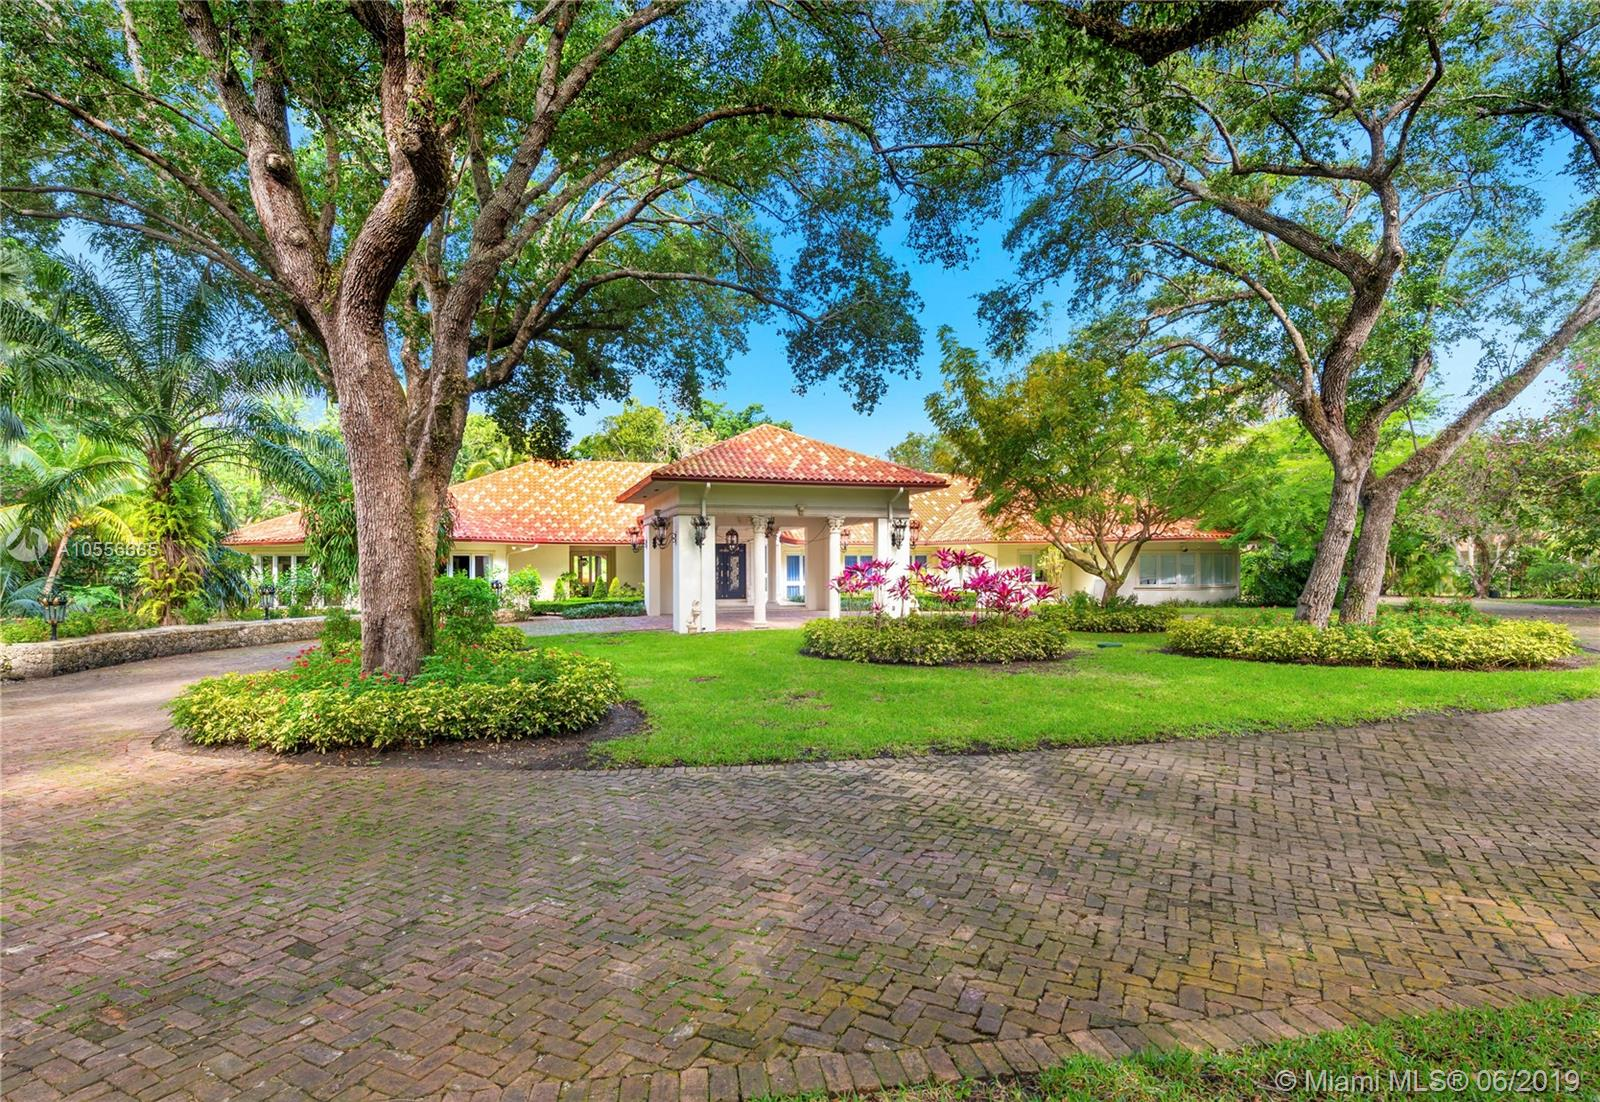 9400 Old Cutler Rd, Pinecrest, Florida